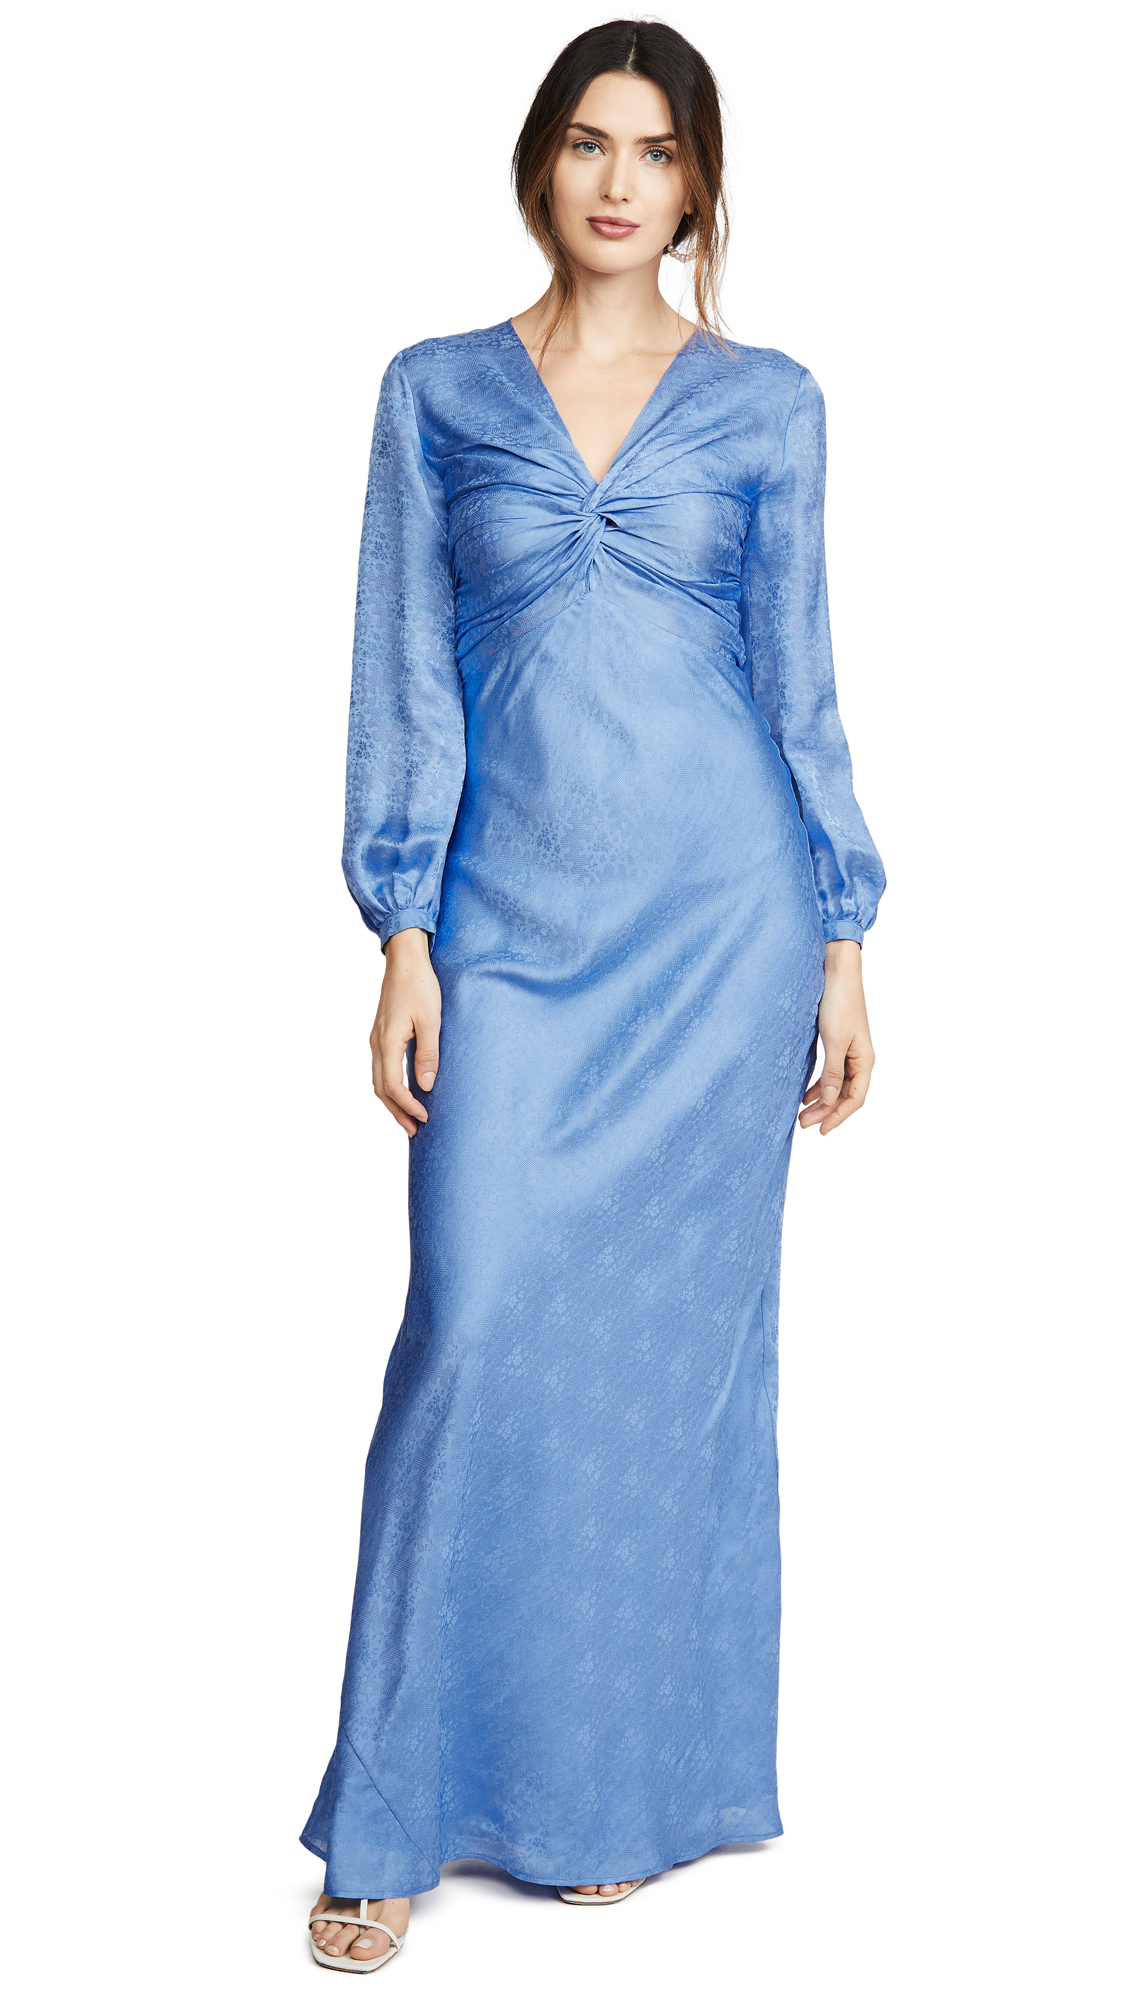 Rebecca De Ravenel Sienna Knotted Gown - 60% Off Sale